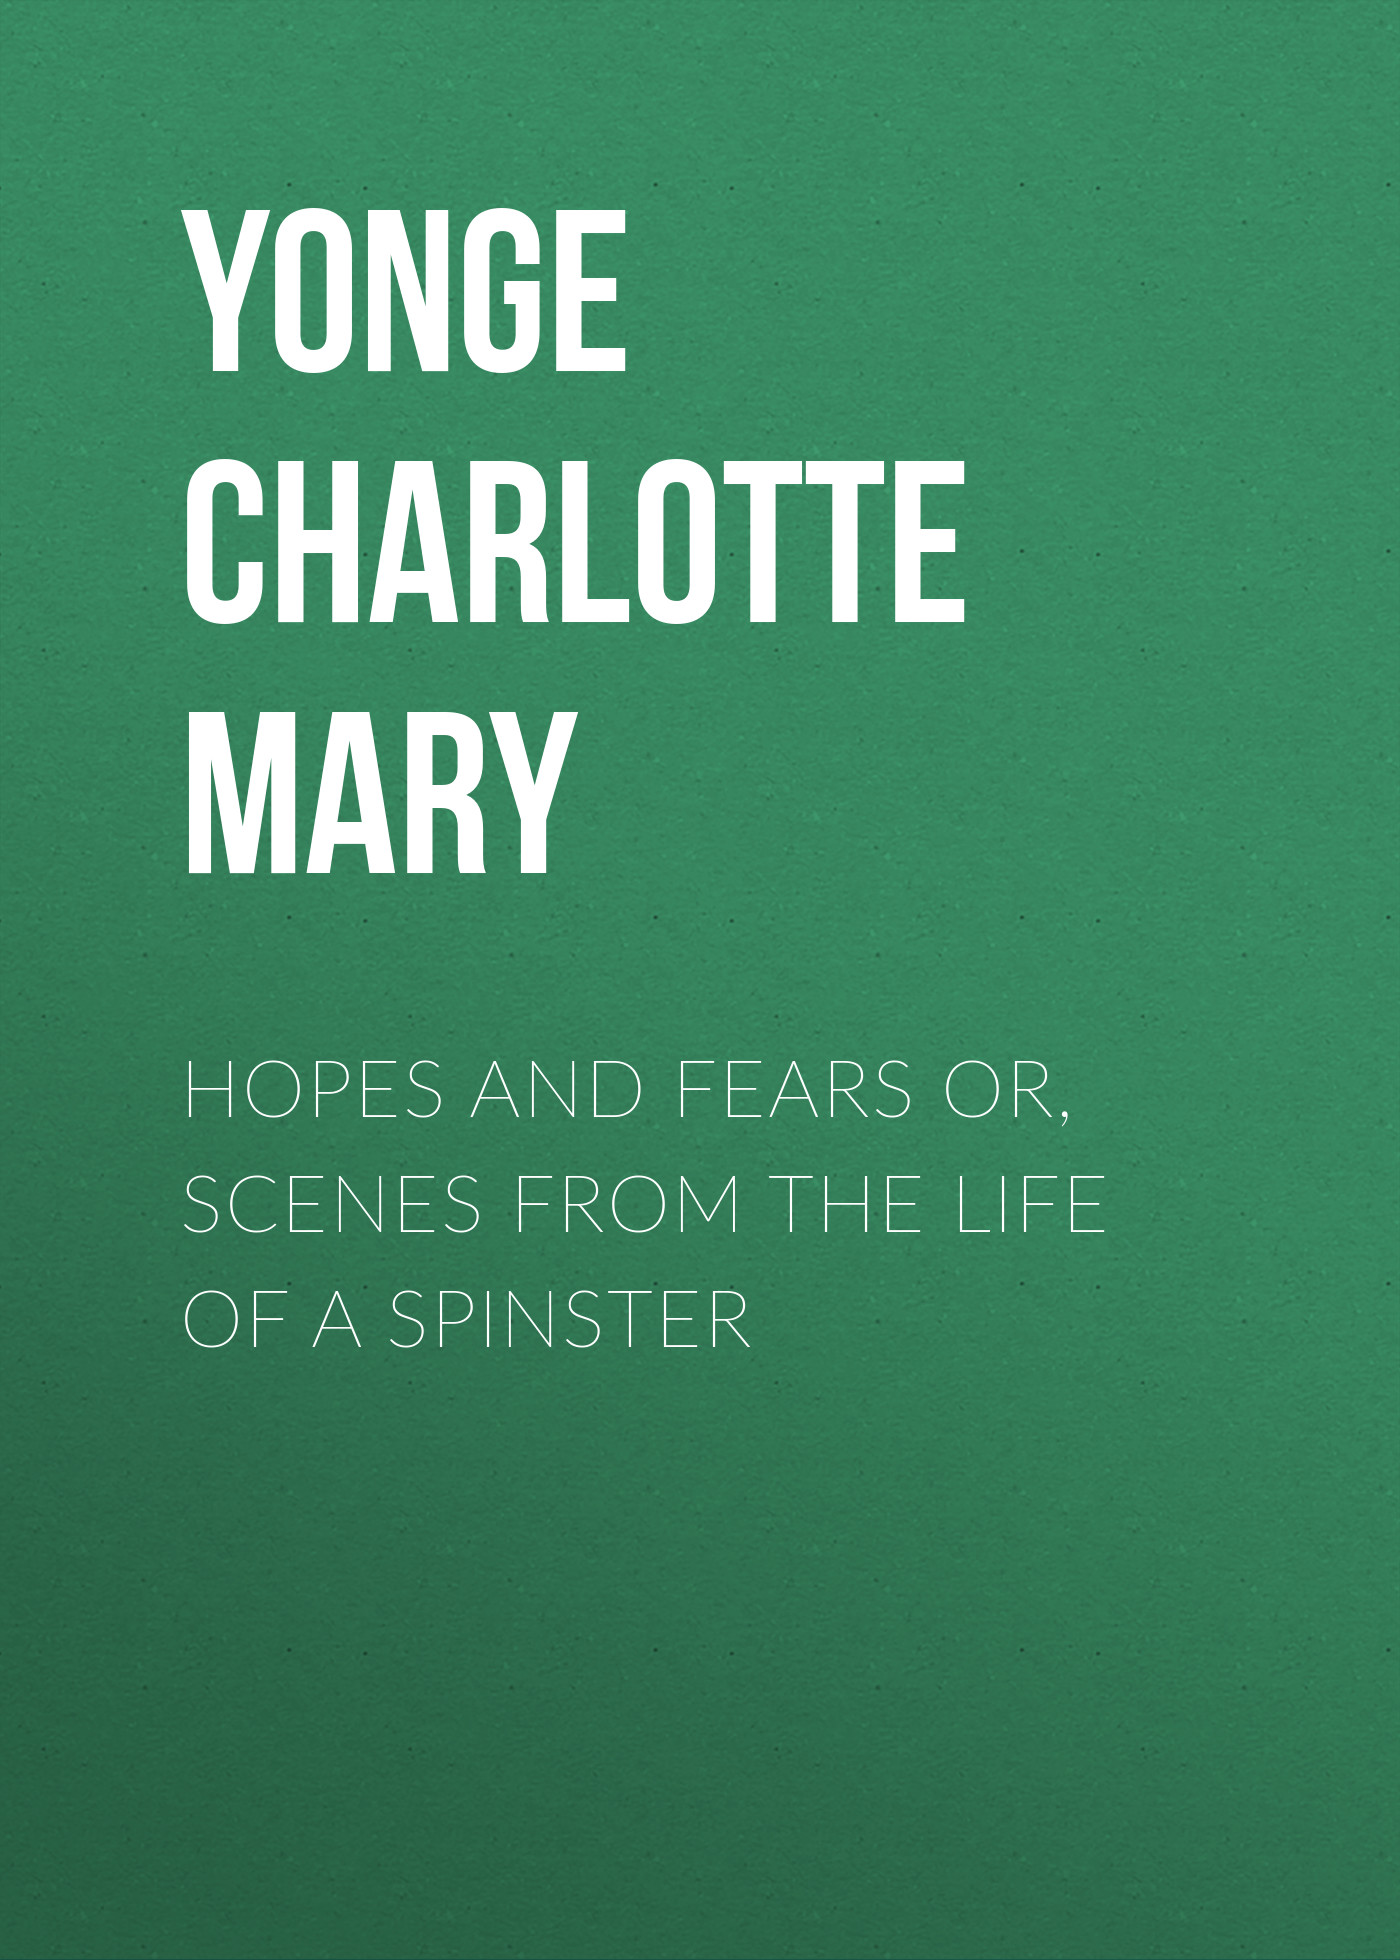 Yonge Charlotte Mary Hopes and Fears or, scenes from the life of a spinster philip hensher scenes from early life